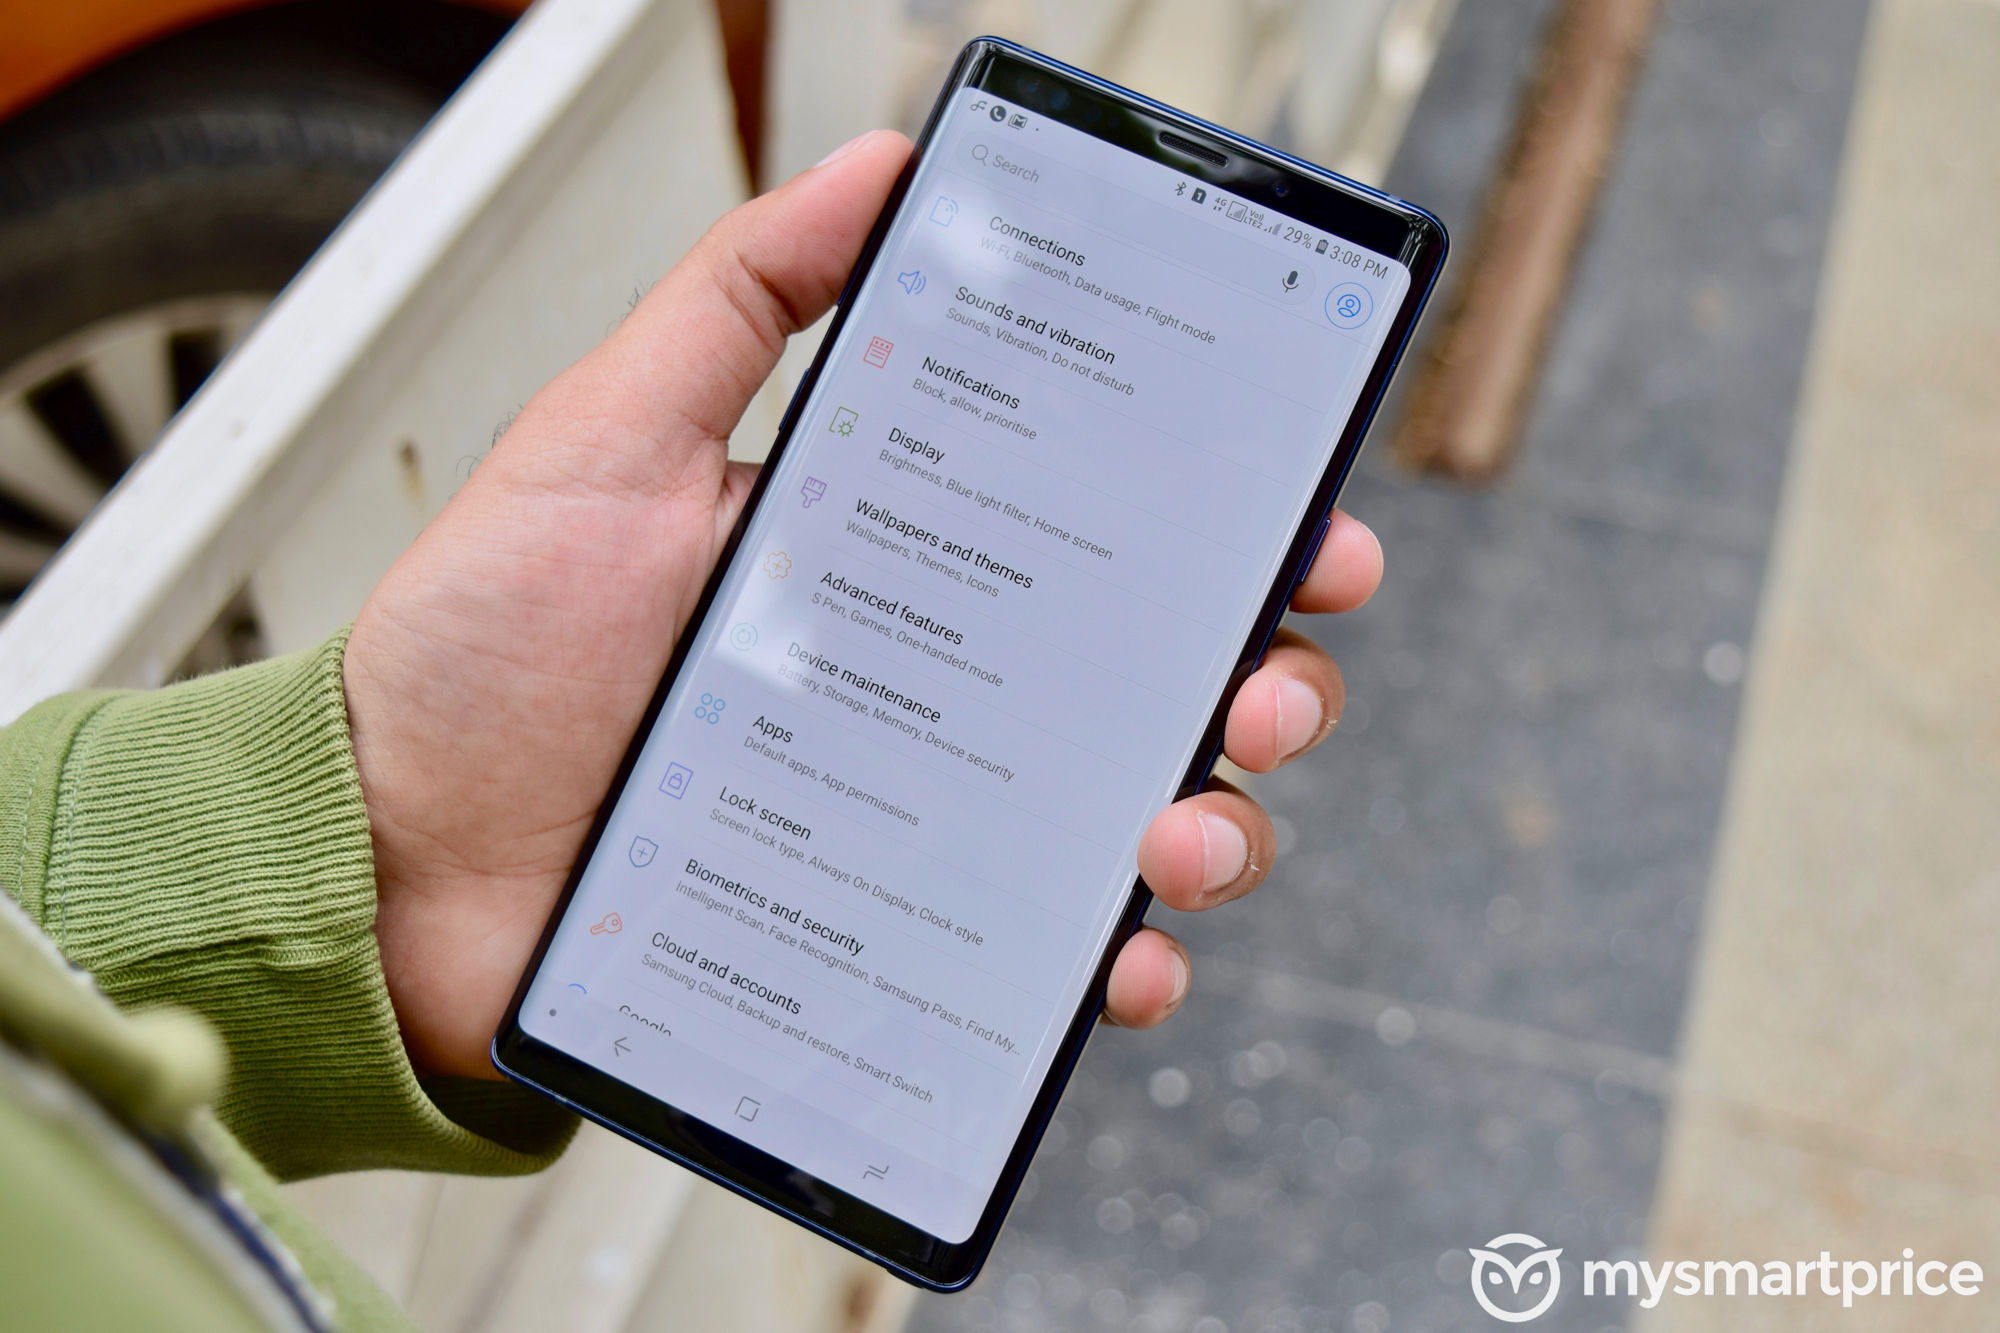 Samsung Galaxy Note 9 Review: A No-Compromise Android Smartphone -  MySmartPrice